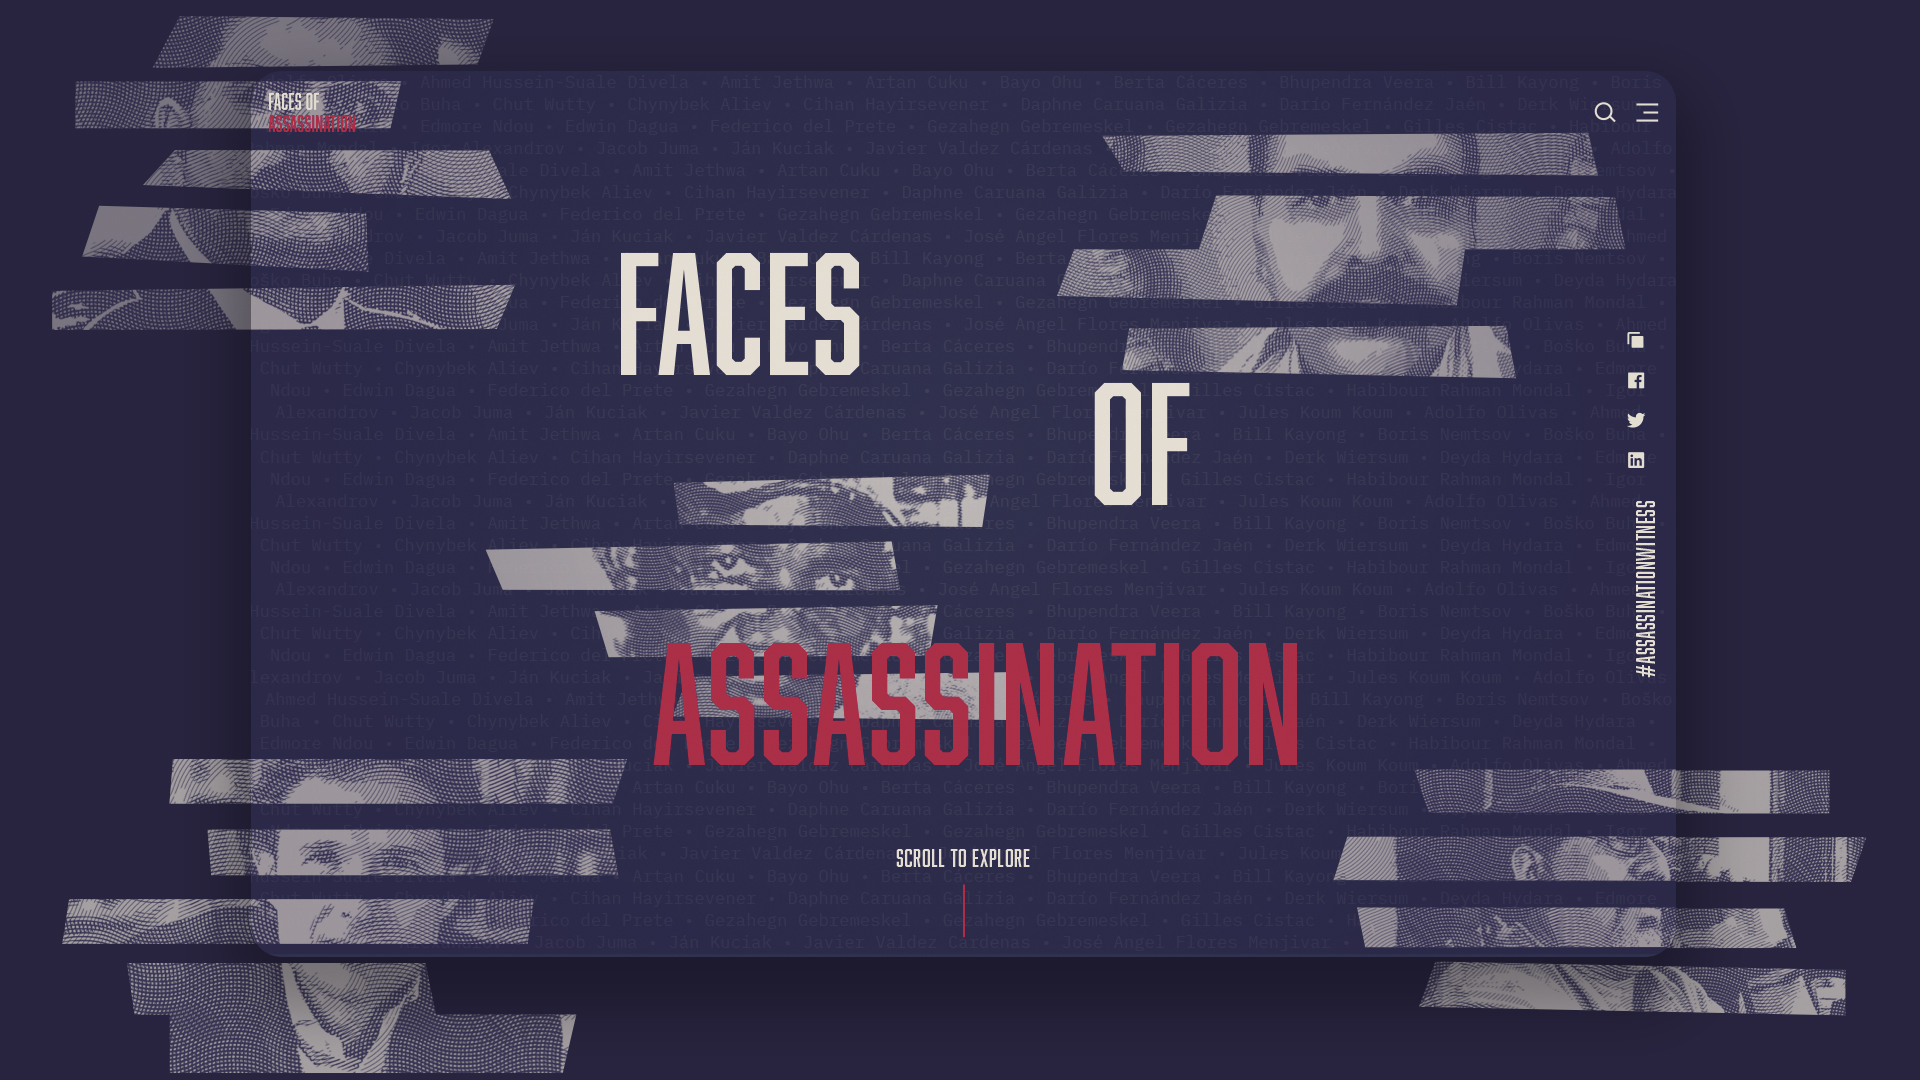 Faces of Assassination